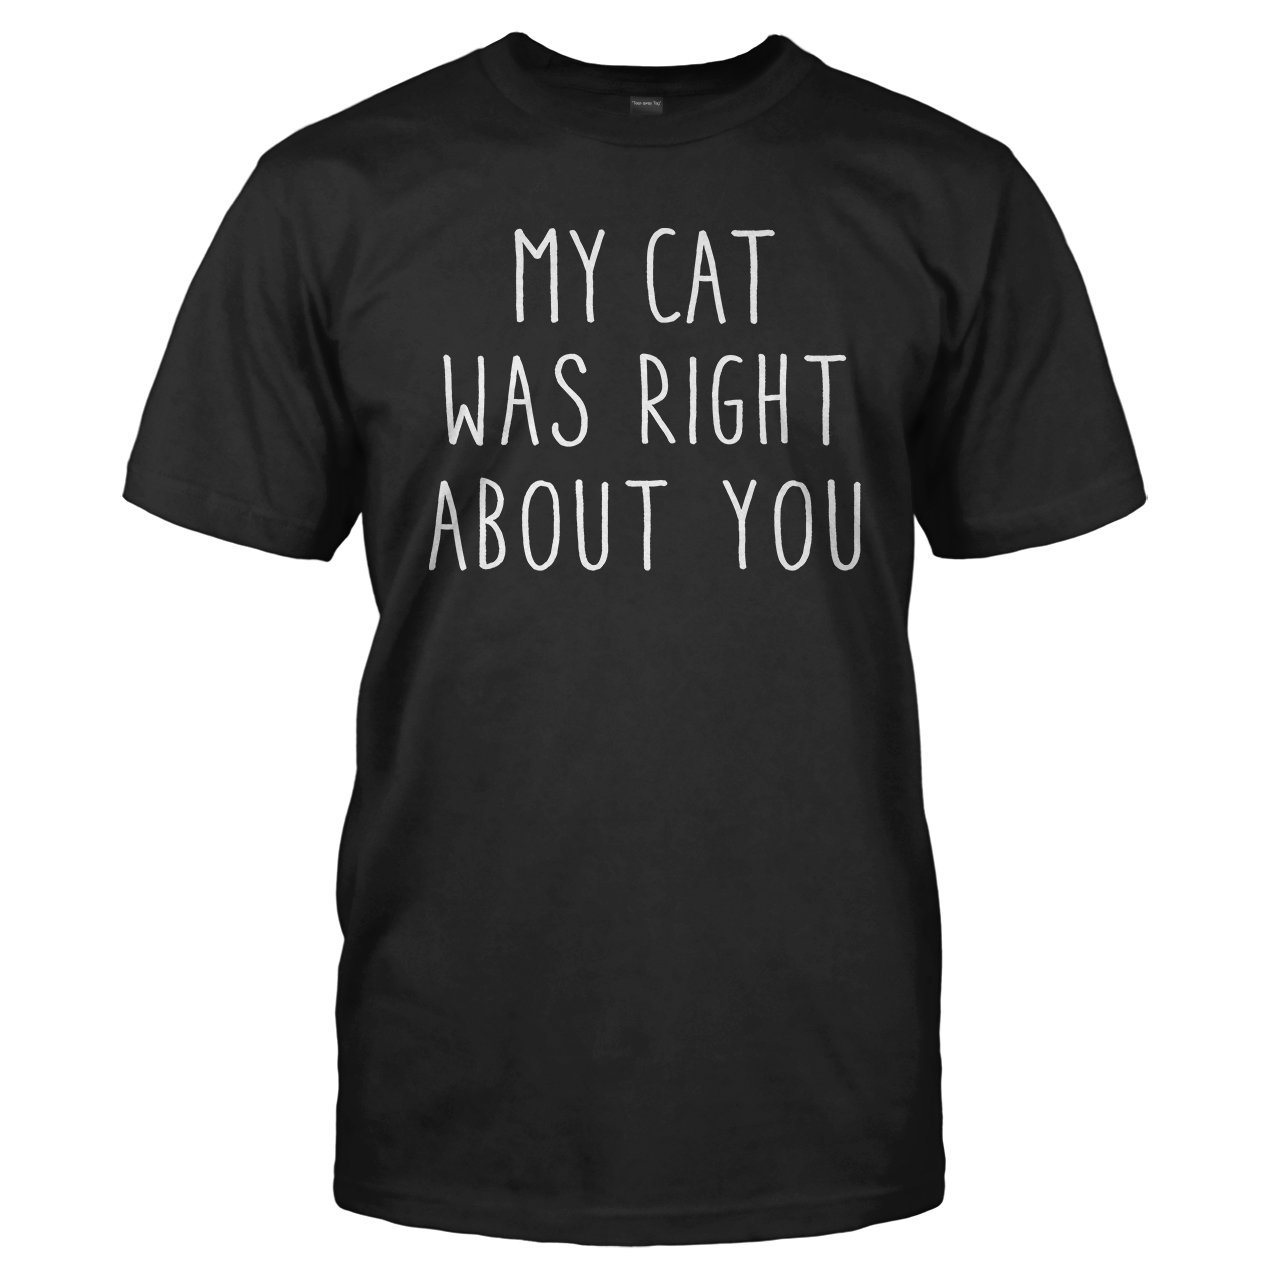 My Cat Was Right About You - T Shirt